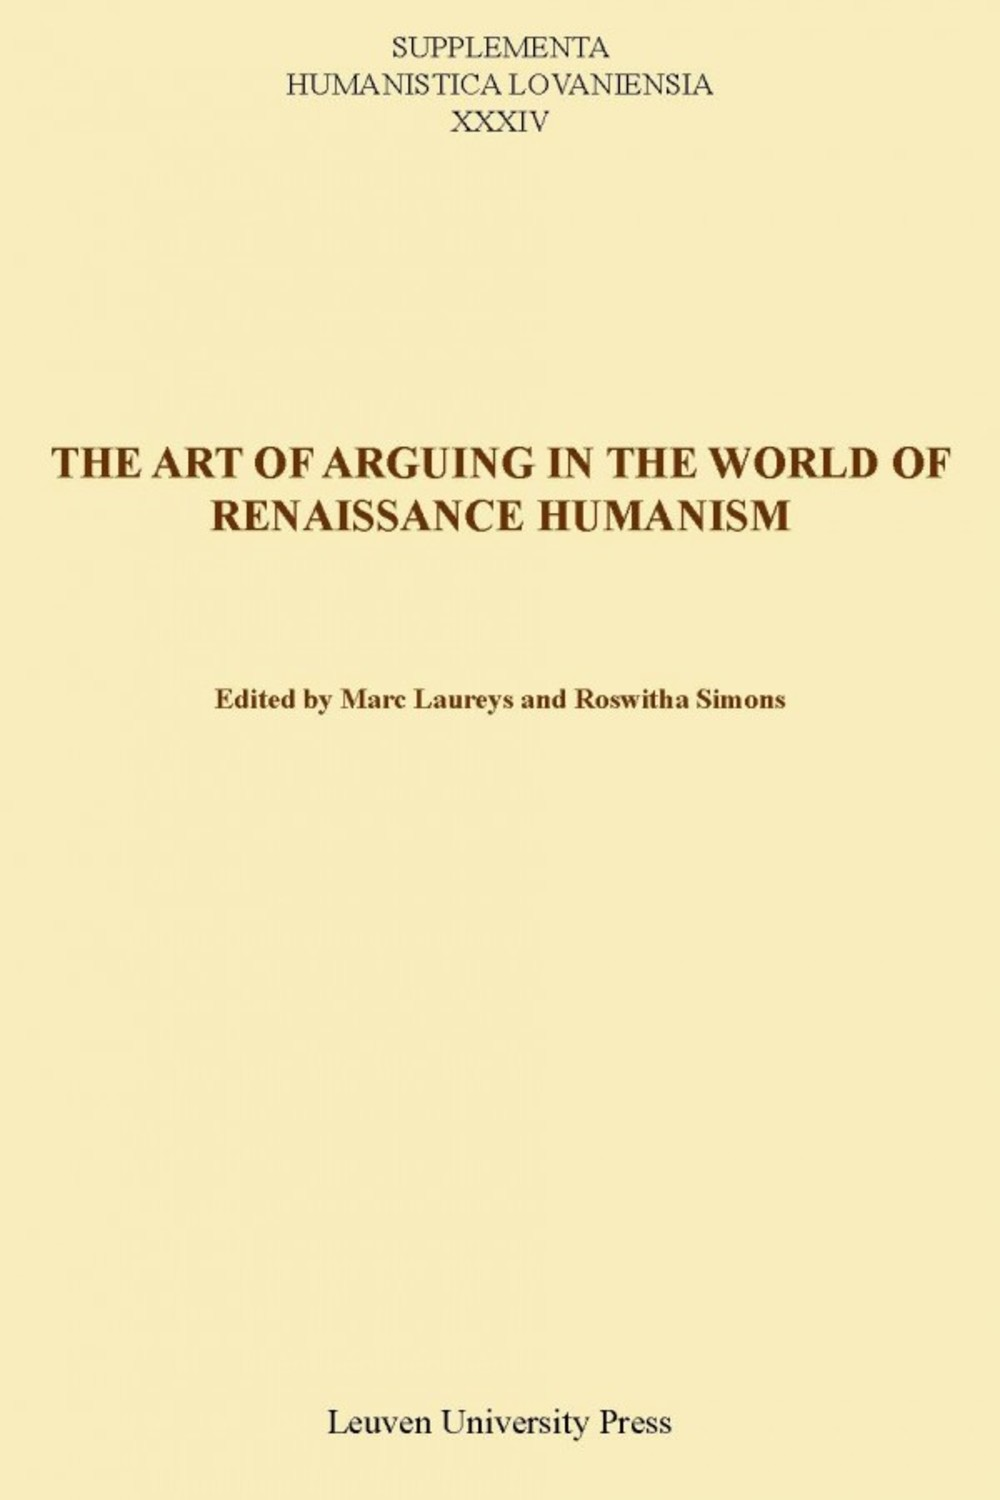 The Art of Arguing in the World of Renaissance Humanism